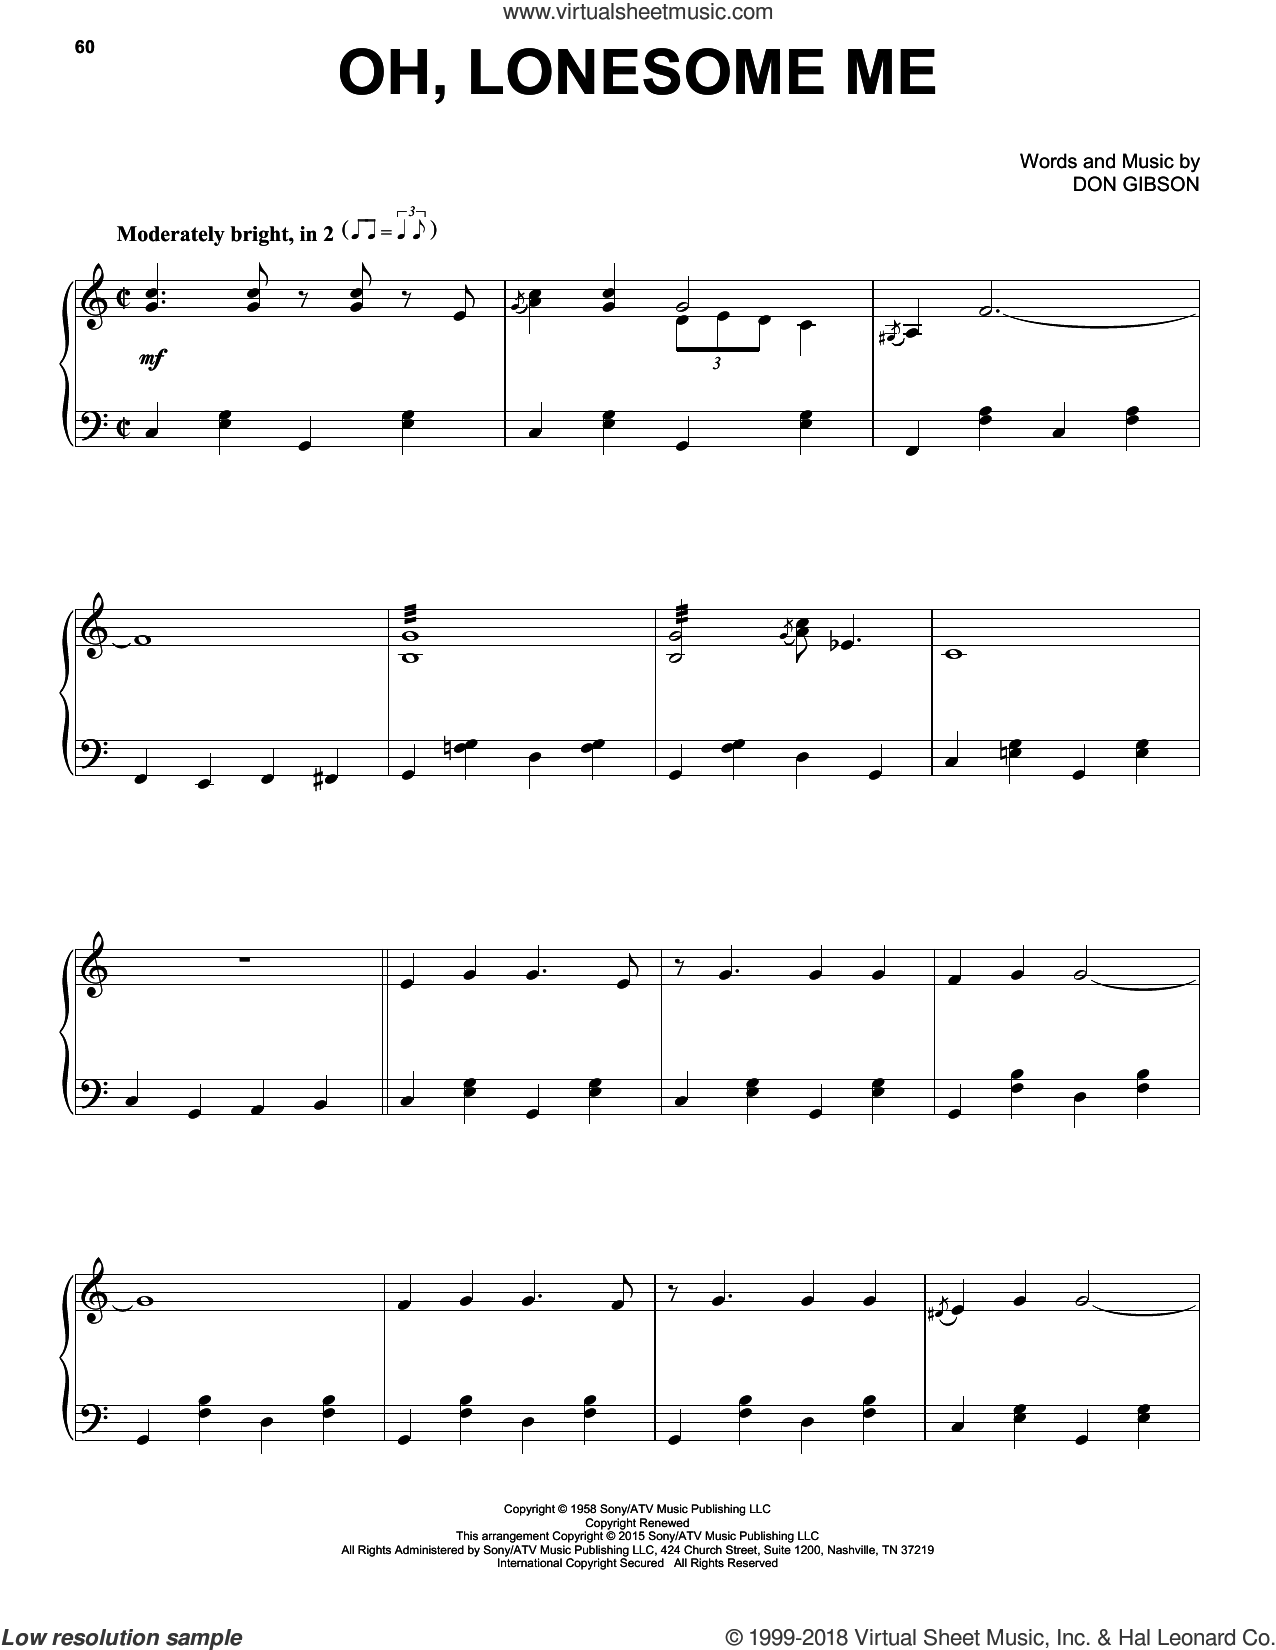 Oh, Lonesome Me sheet music for piano solo by Don Gibson and Neil Young, intermediate skill level